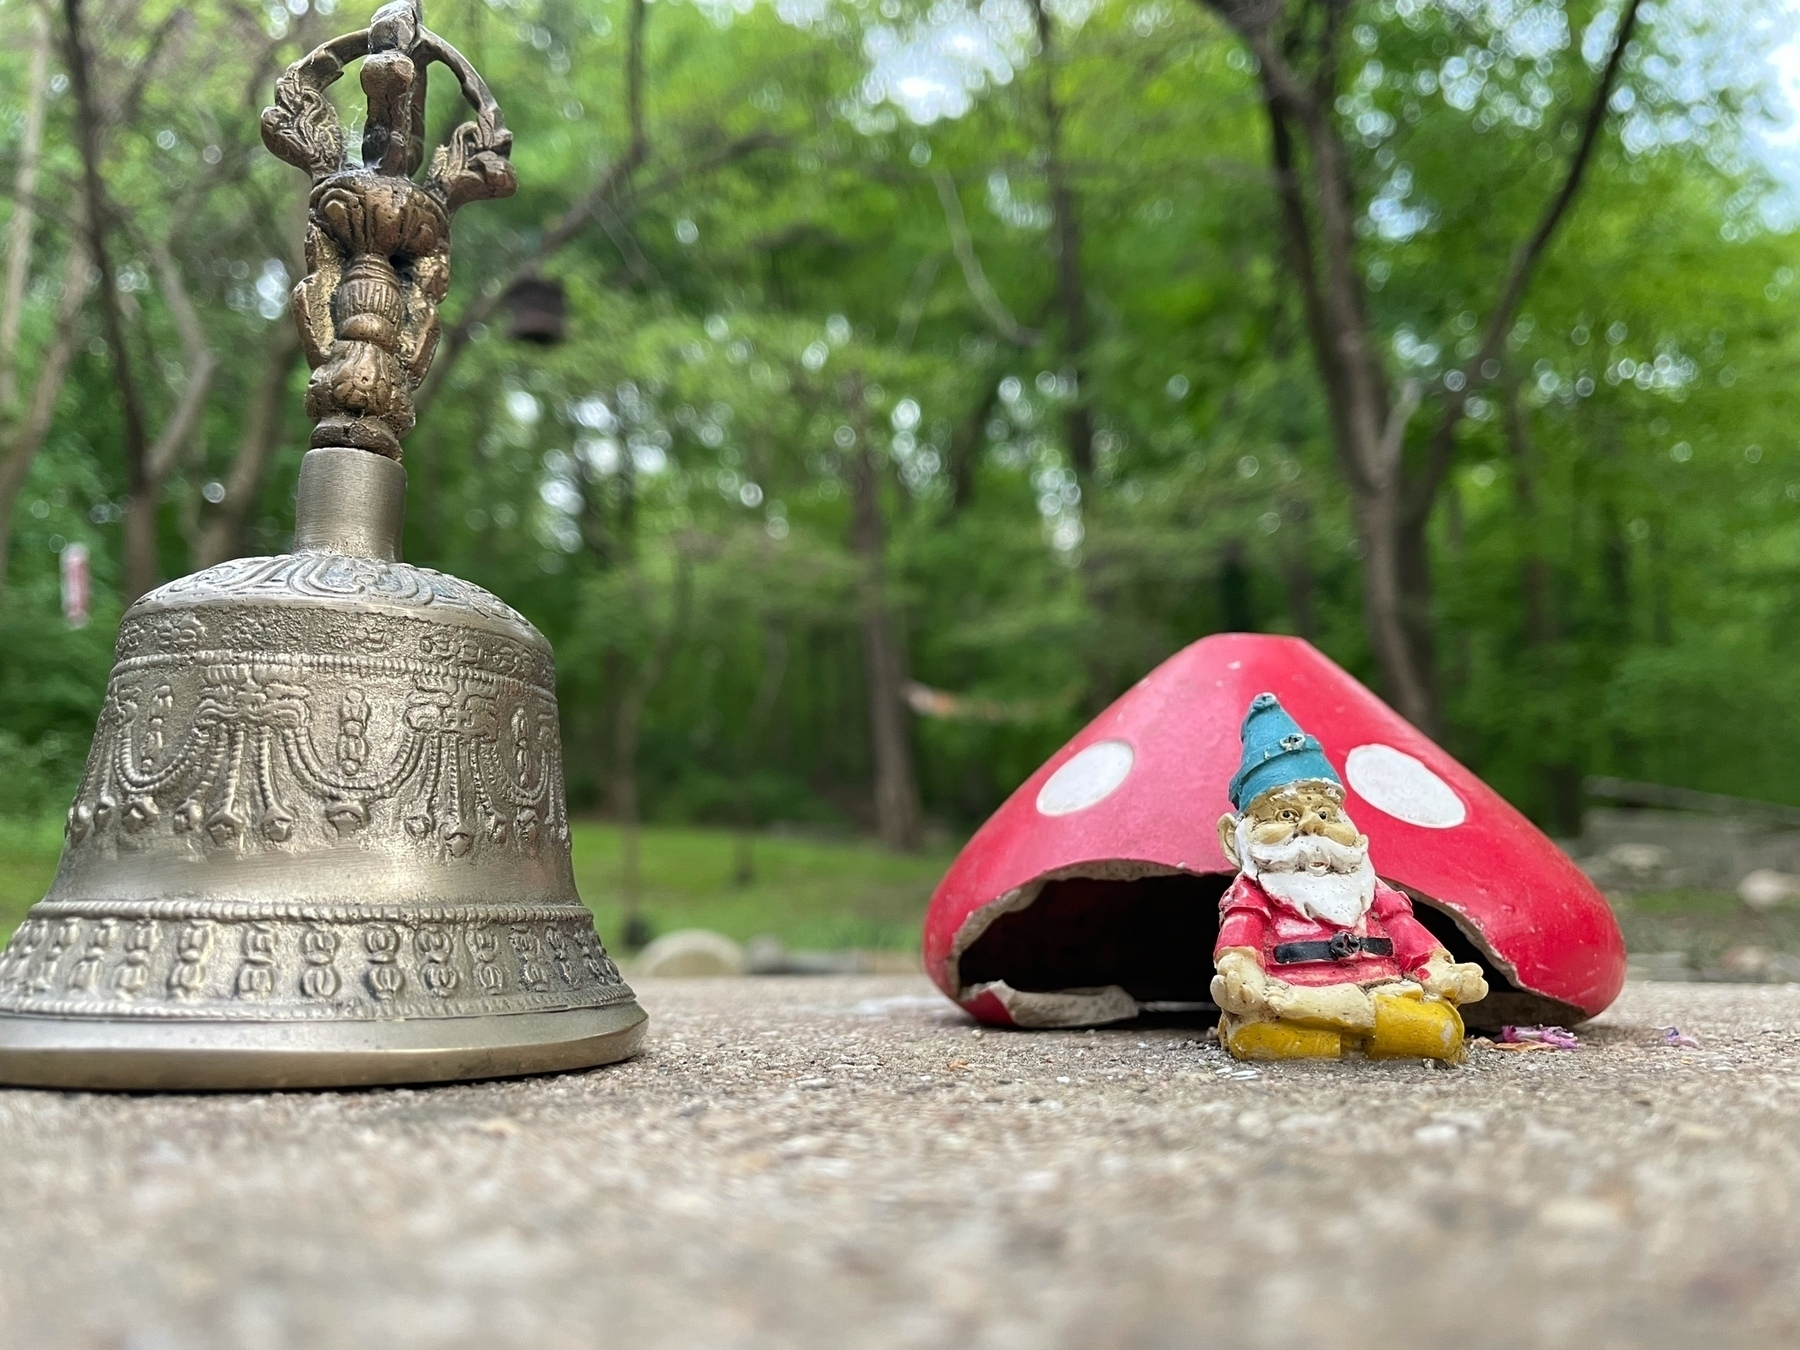 A bell and ceramic mushroom, the mushroom covering a small gnome.